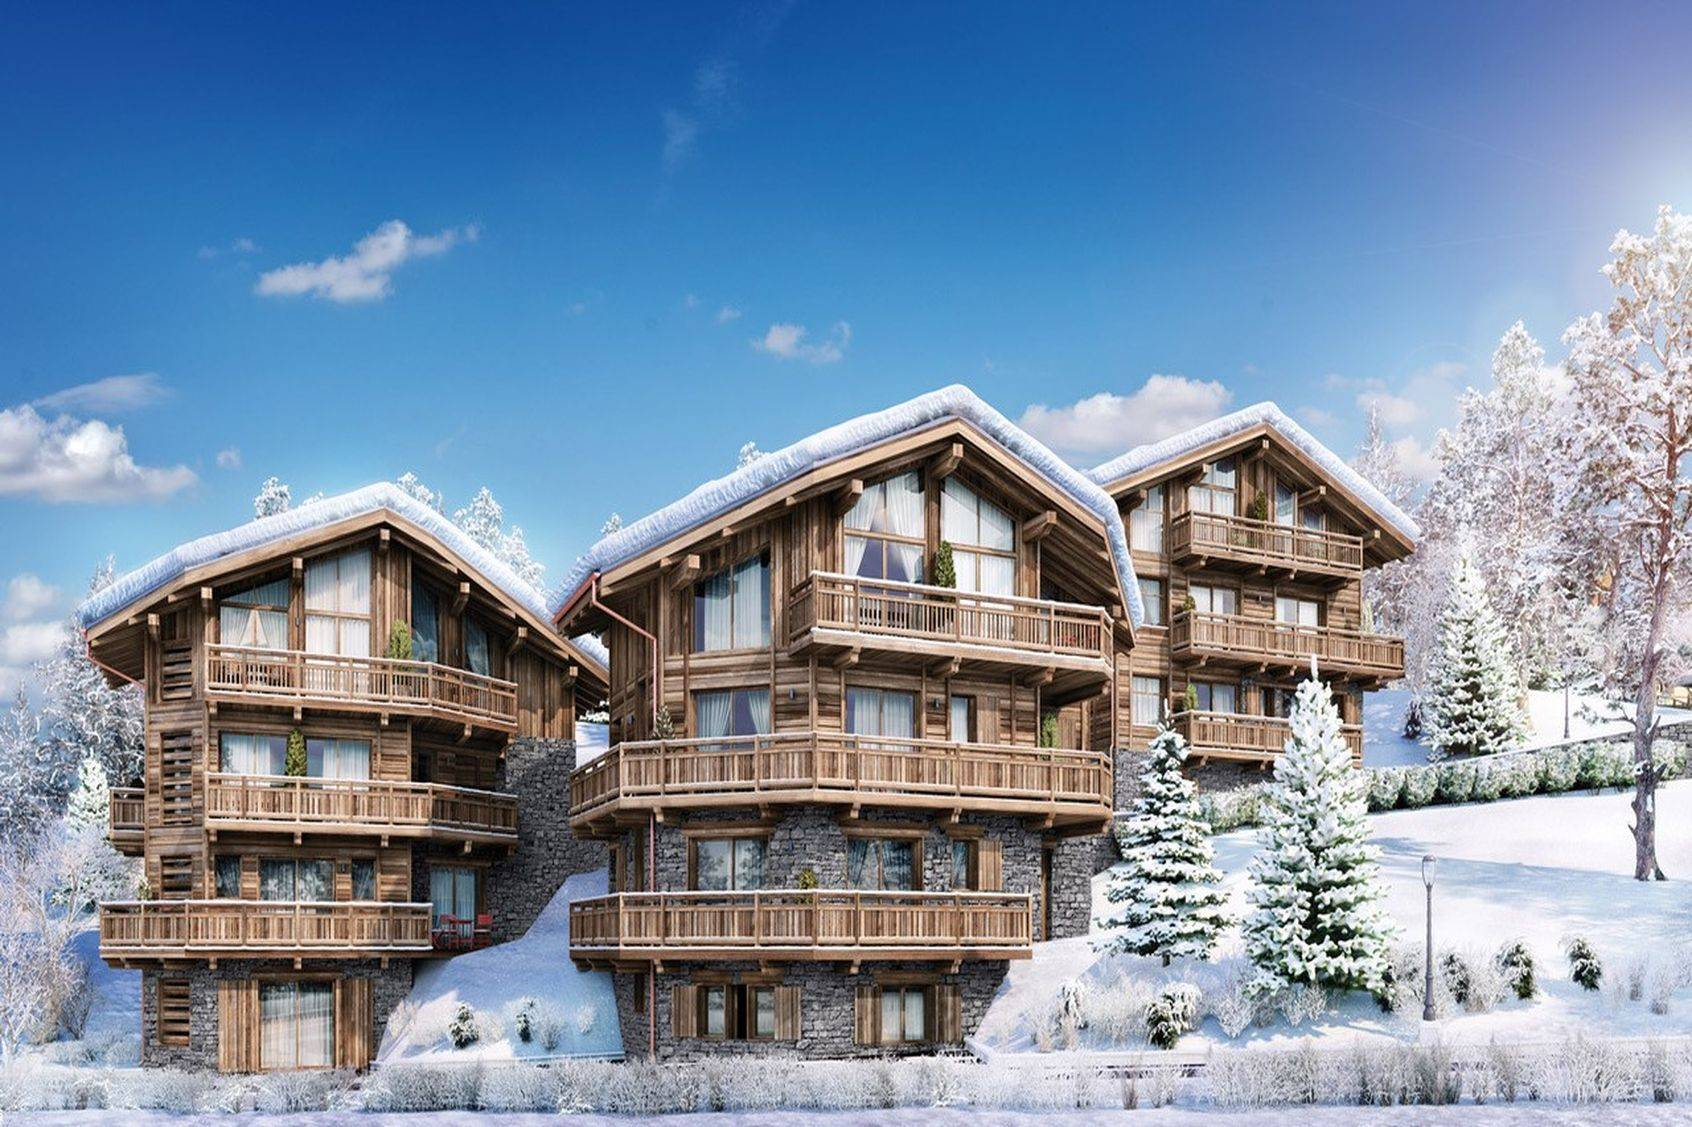 Les Chalets de la Stelvio | Courchevel Village | Journal Cimalpes